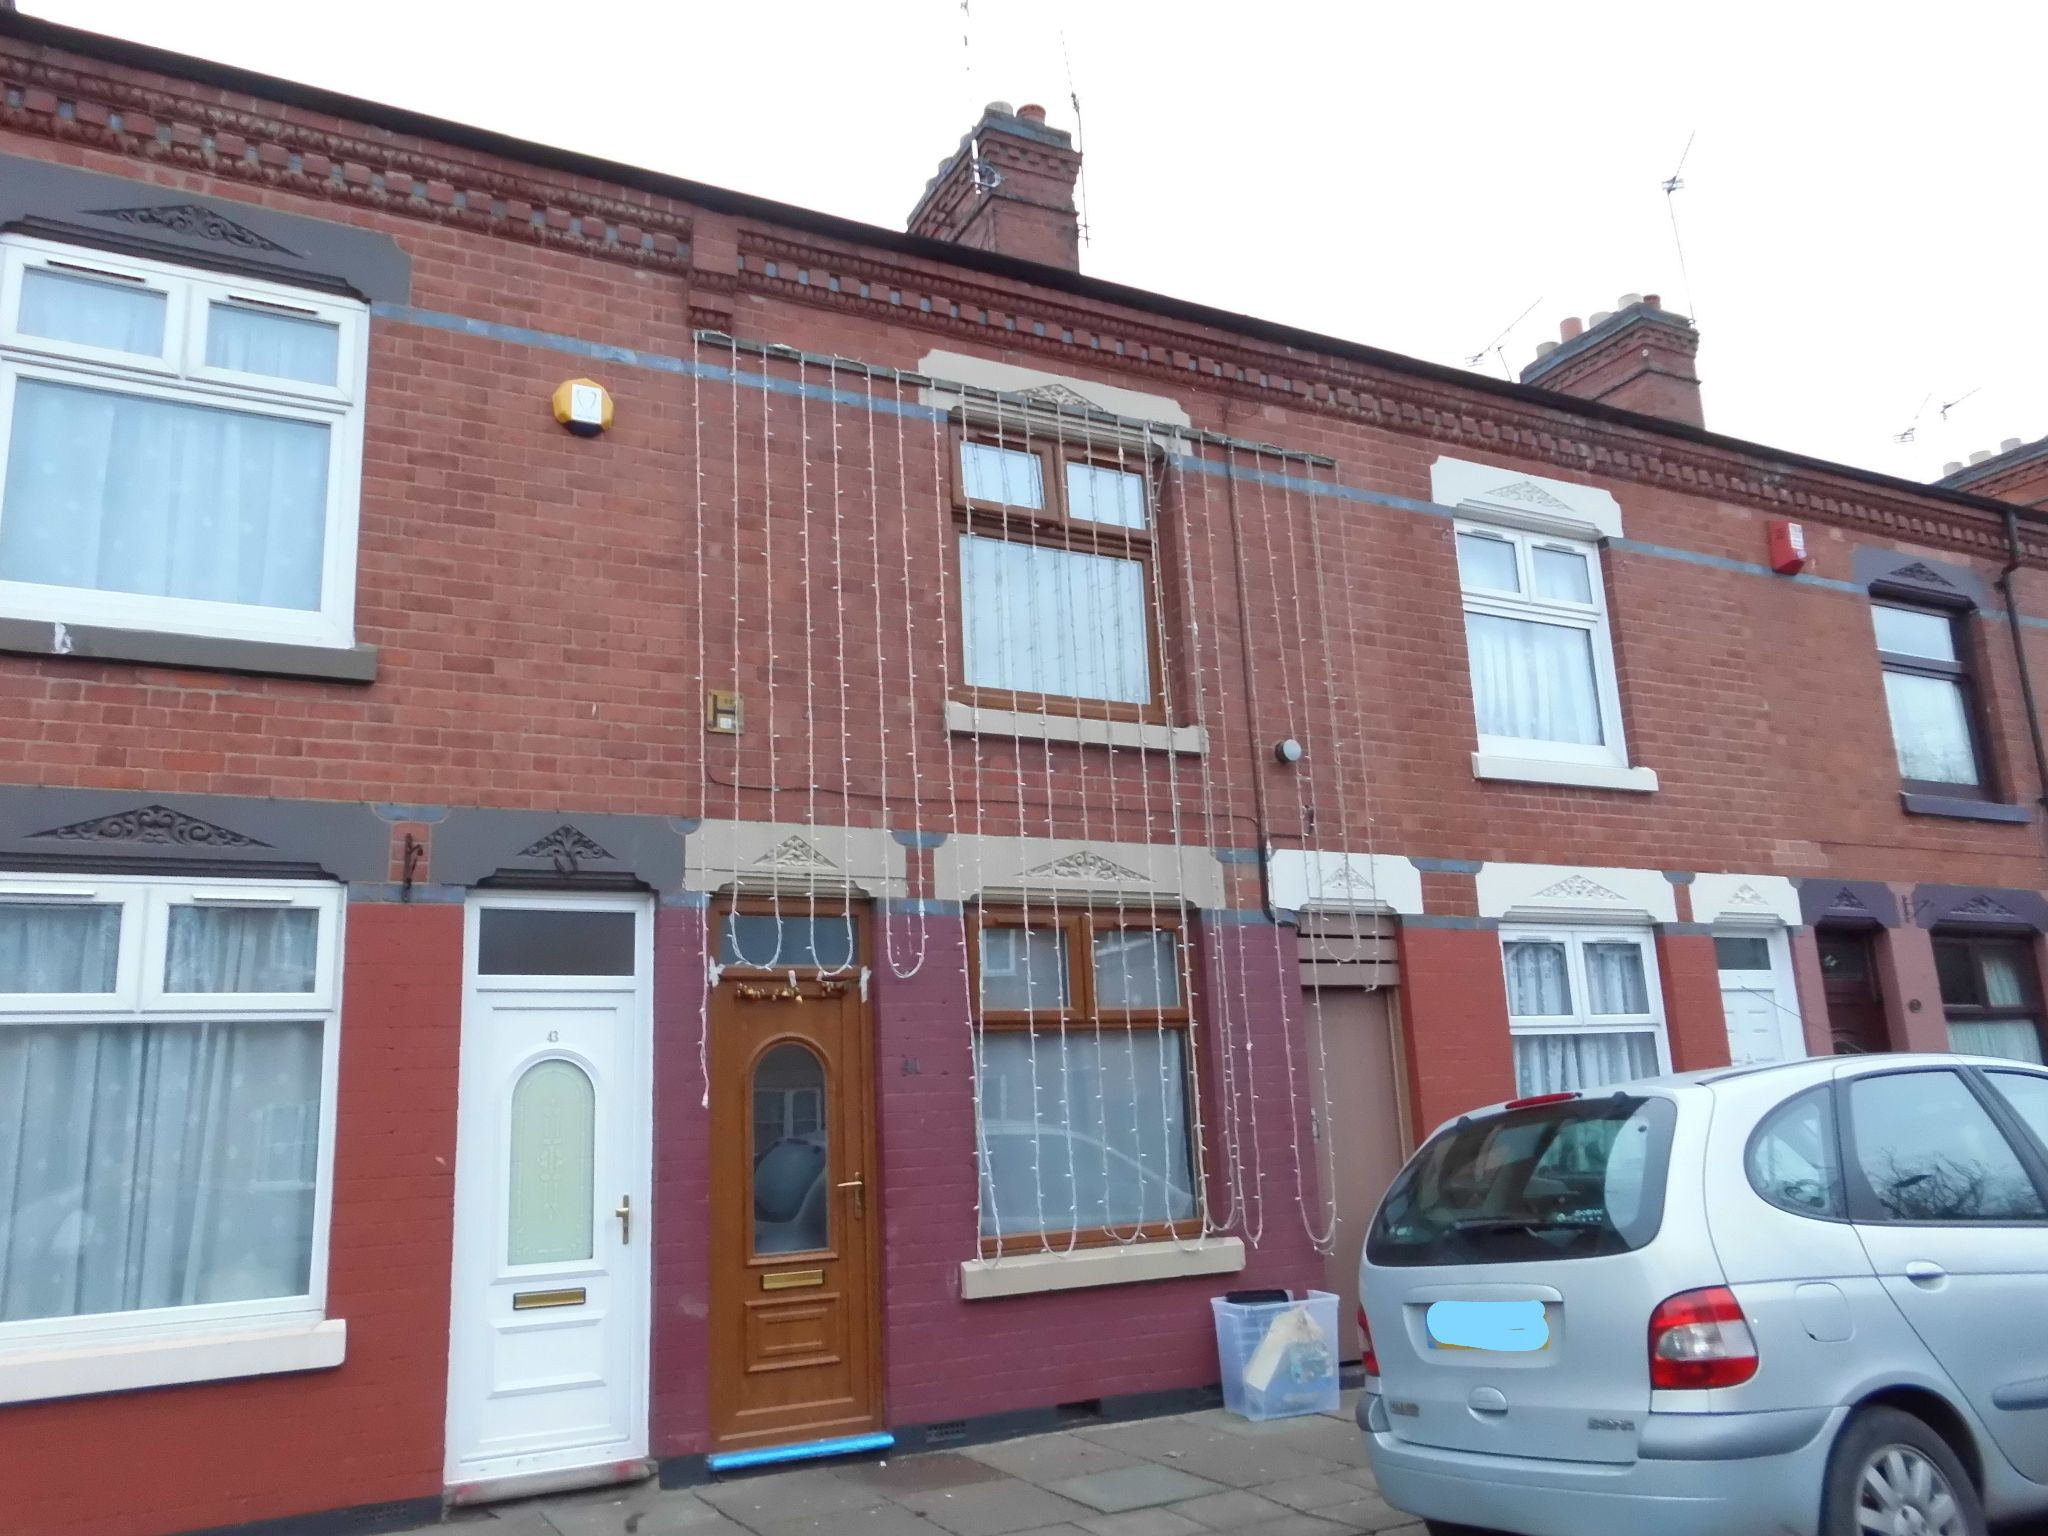 3 Bedroom Mid Terraced House For Sale 41 Weymouth Street Image 1